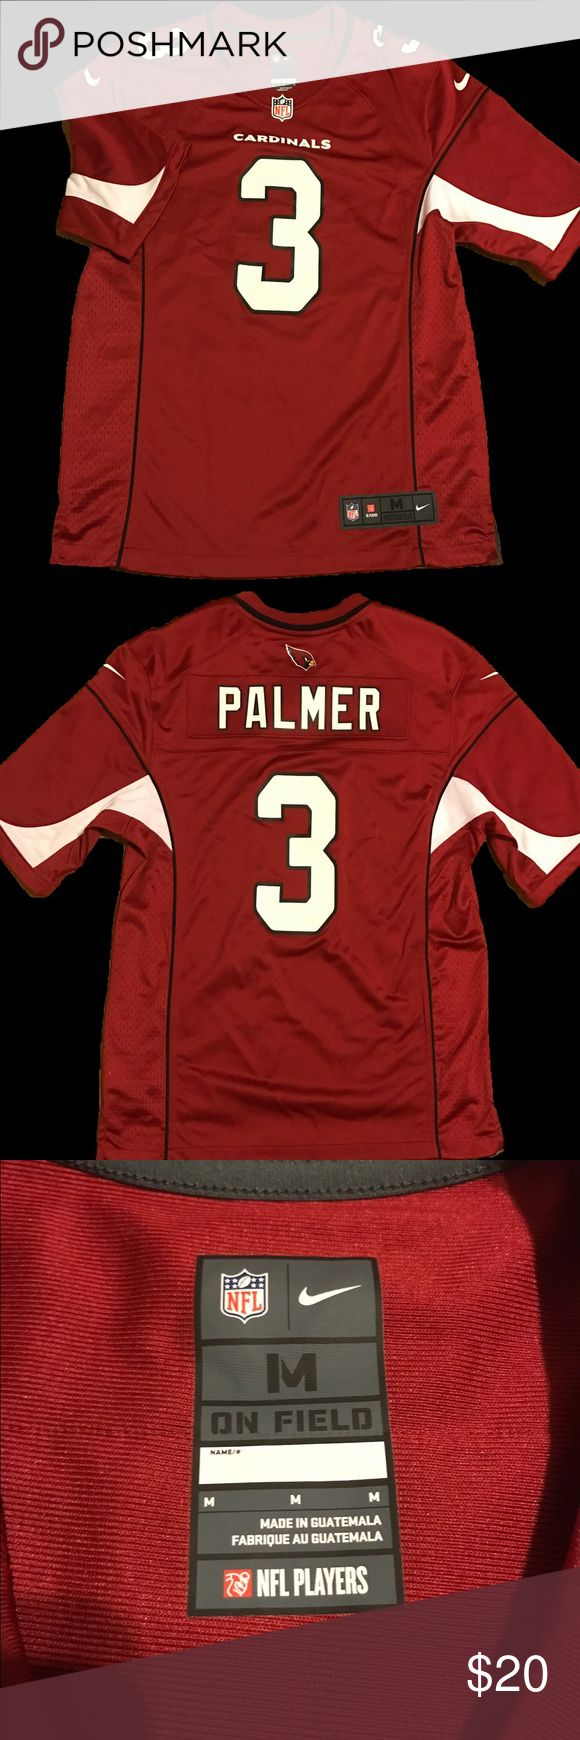 "Arizona Cardinals Nike Jersey C. Palmer #3 -M Arizona Cardinals Nike Jersey C. Palmer  NWOT, Never worn Nike NFL Arizona Cardinals quarterback Carson Palmer #3 jersey on field jersey. This is not a stitched jersey.  Sz M Material 100% Polyester   Measurements (approx) Chest 42"" Shoulders 19 1/2"" Sleeves 13"" Nike Shirts Tees - Short Sleeve"